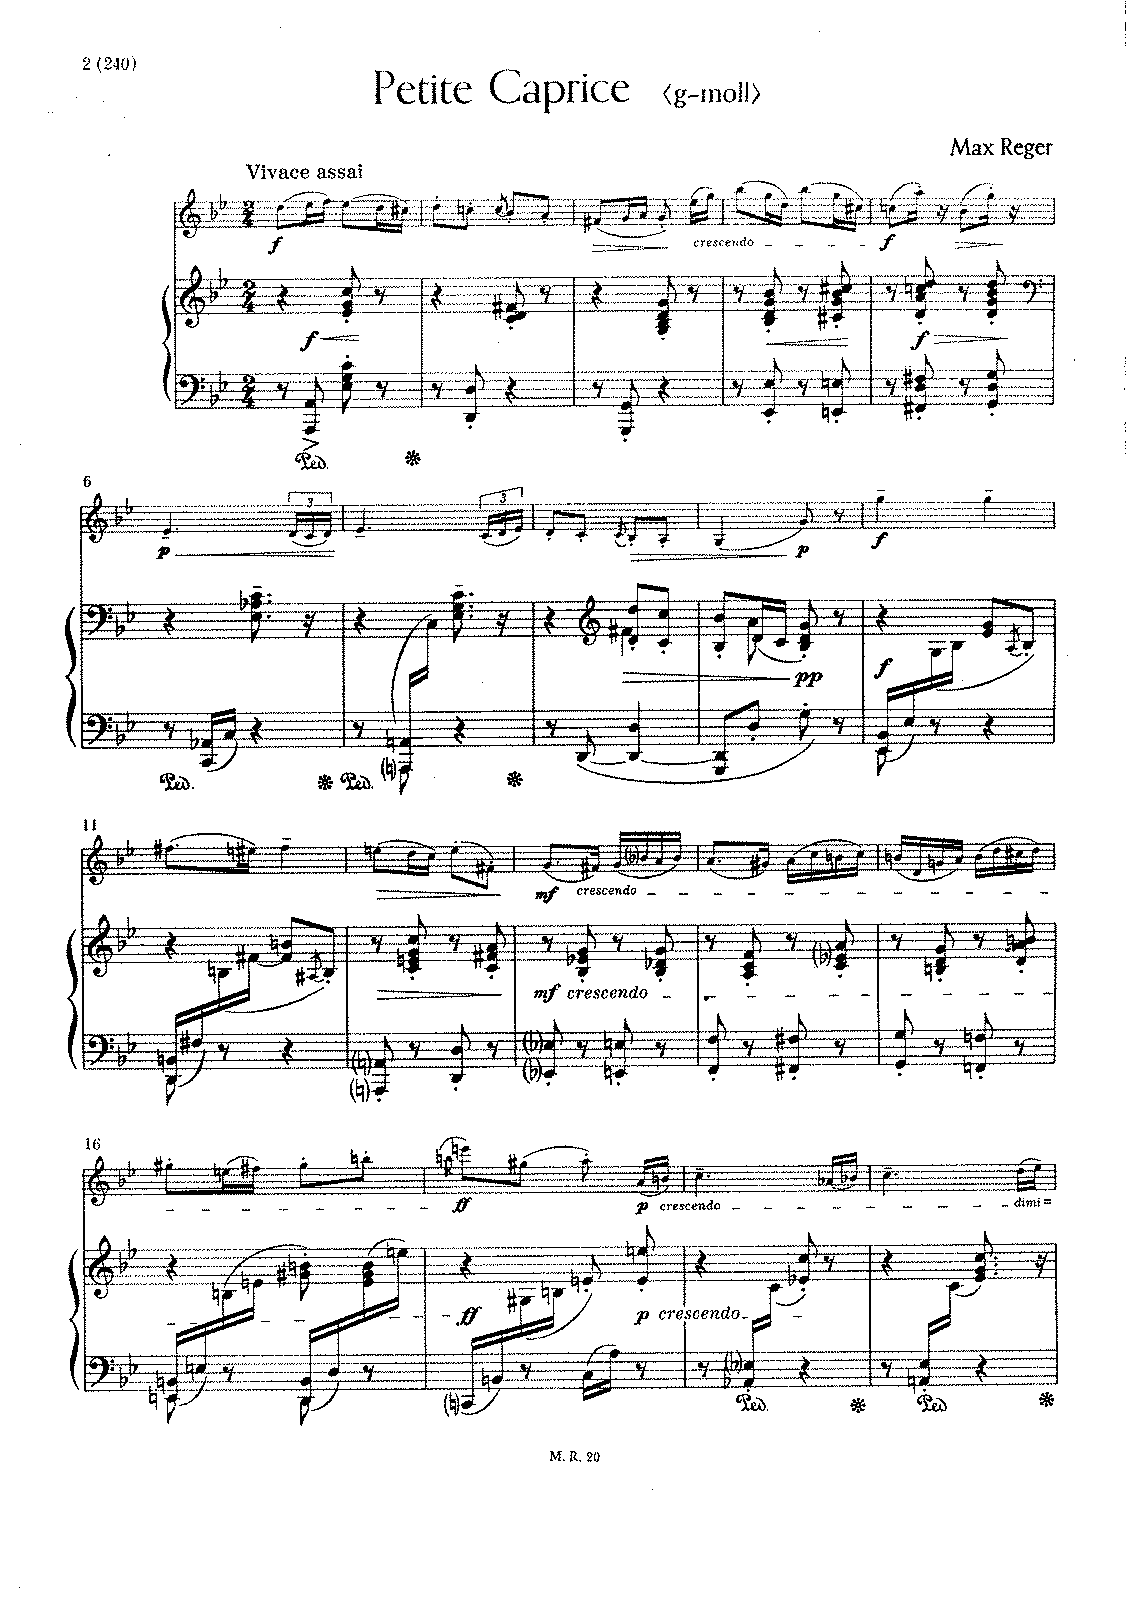 PMLP98291-Reger Petite Caprice in g for Violin and Piano score RGA.pdf